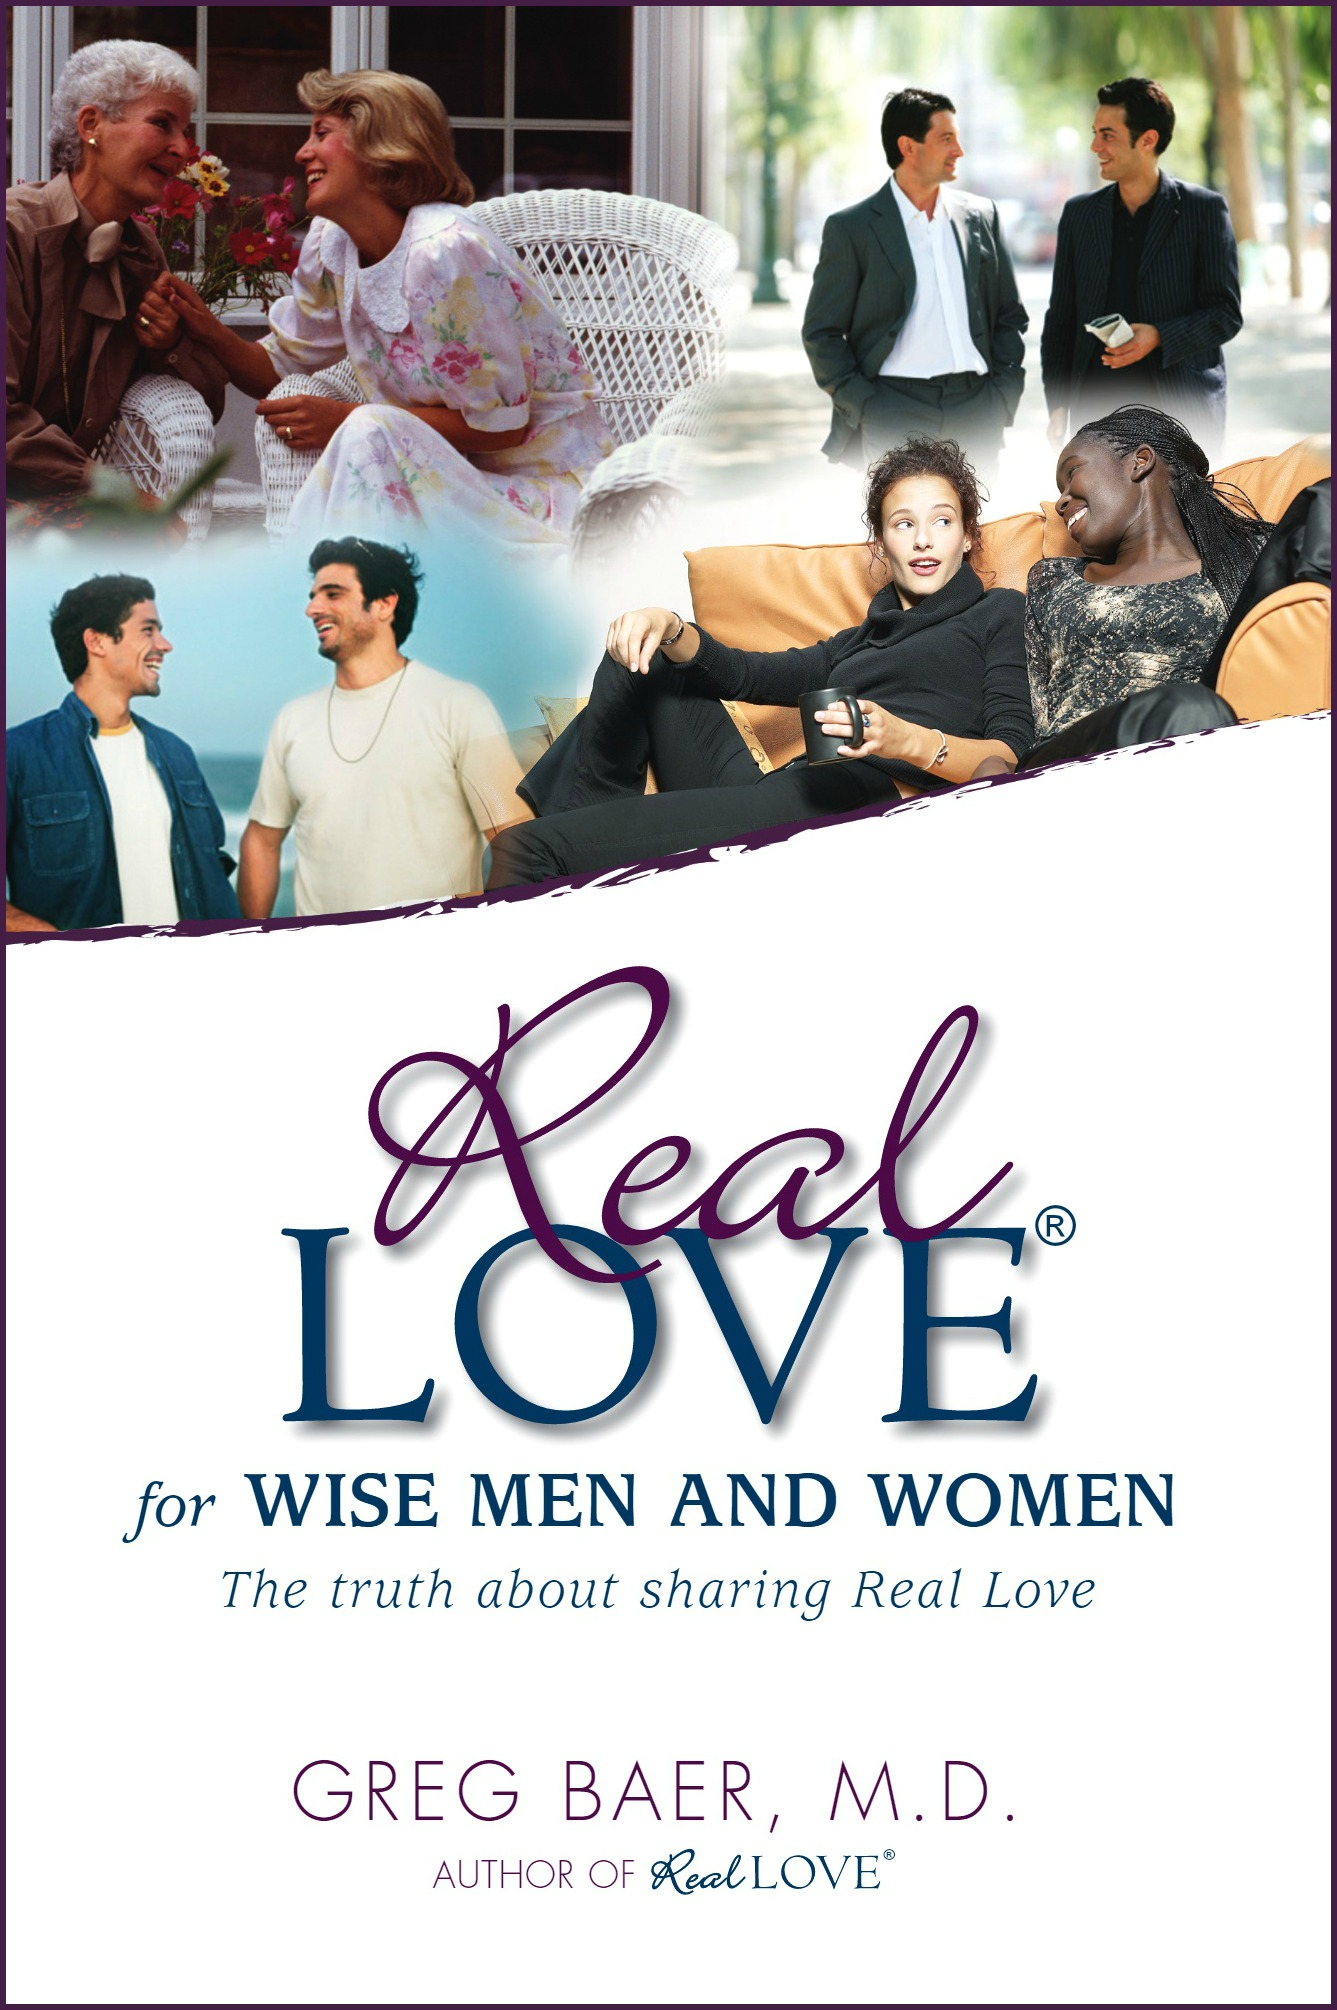 Real Love for Wisemen and Women